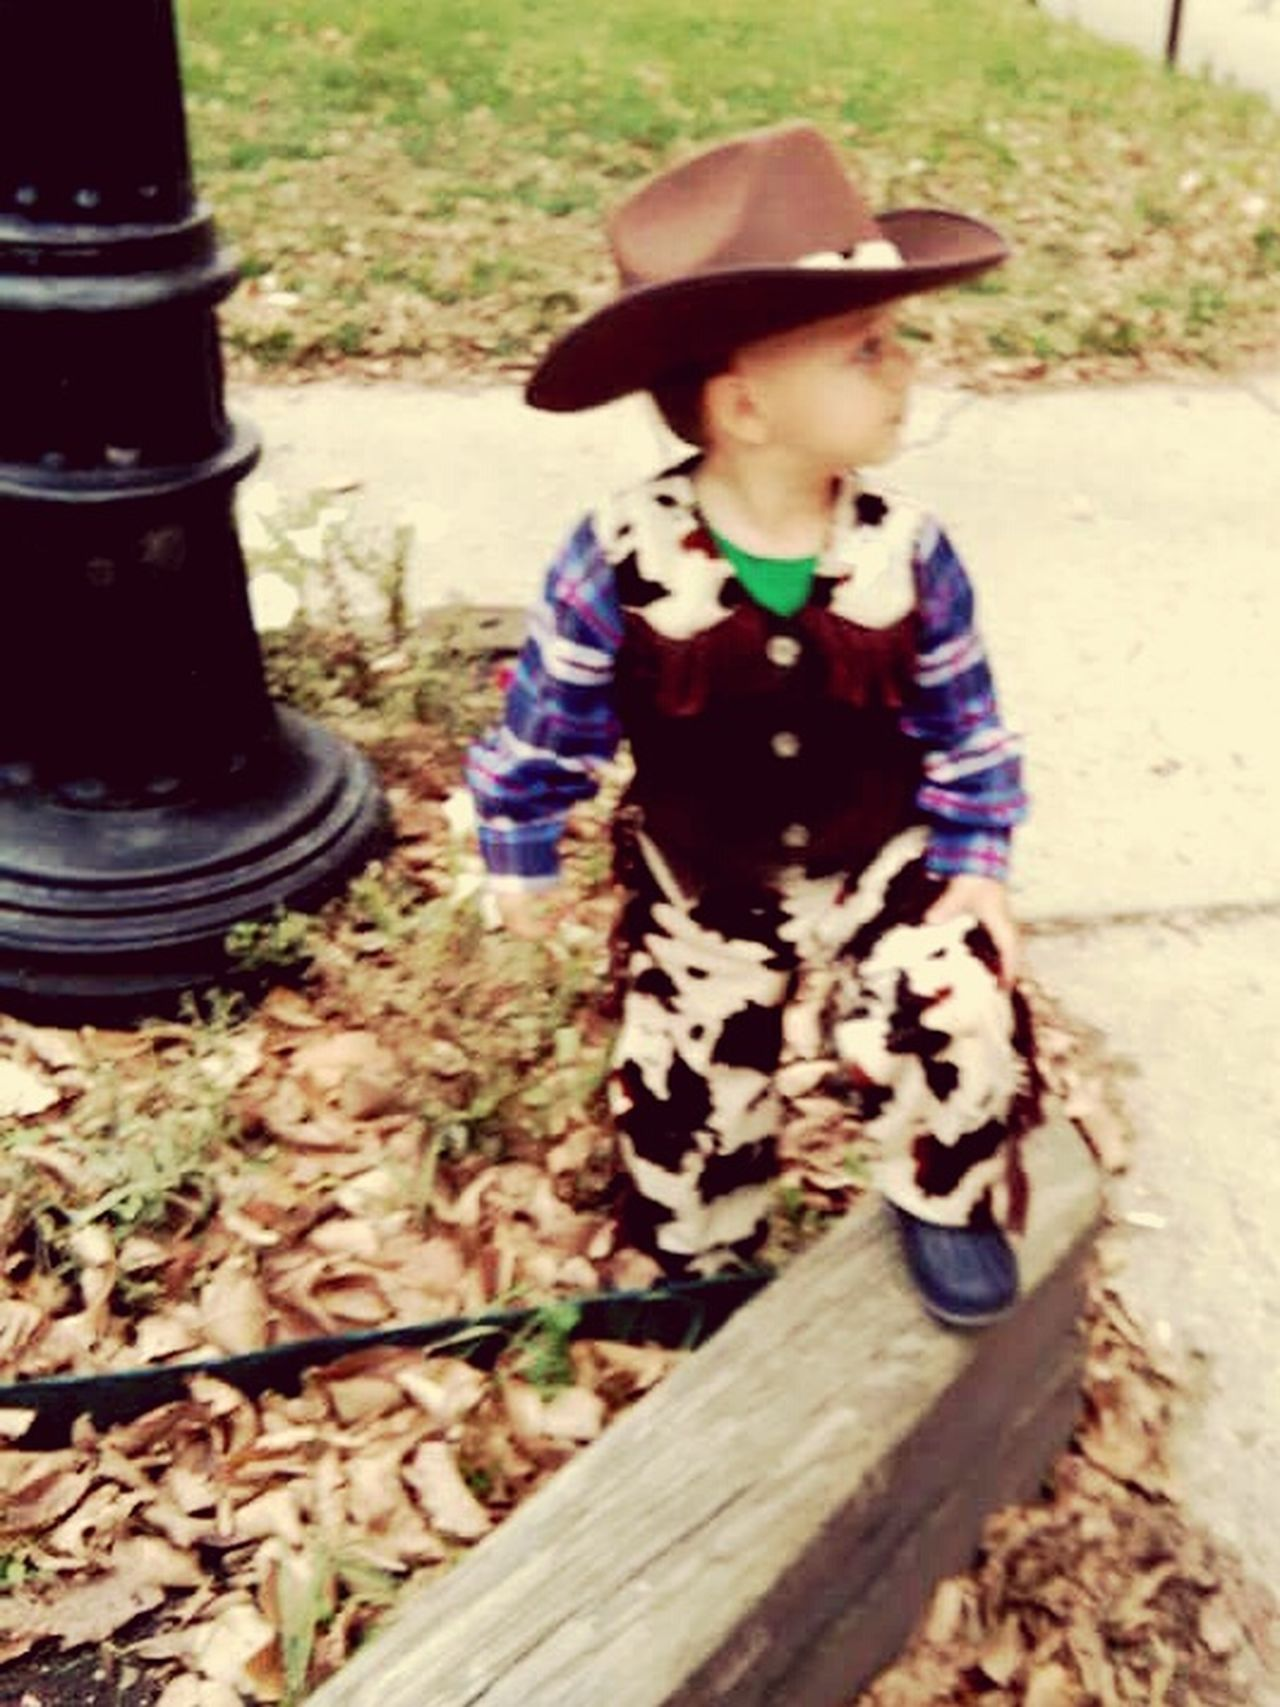 Cowboy Cute Cosplay Child Handsome Boy Littleman Western Wrangler